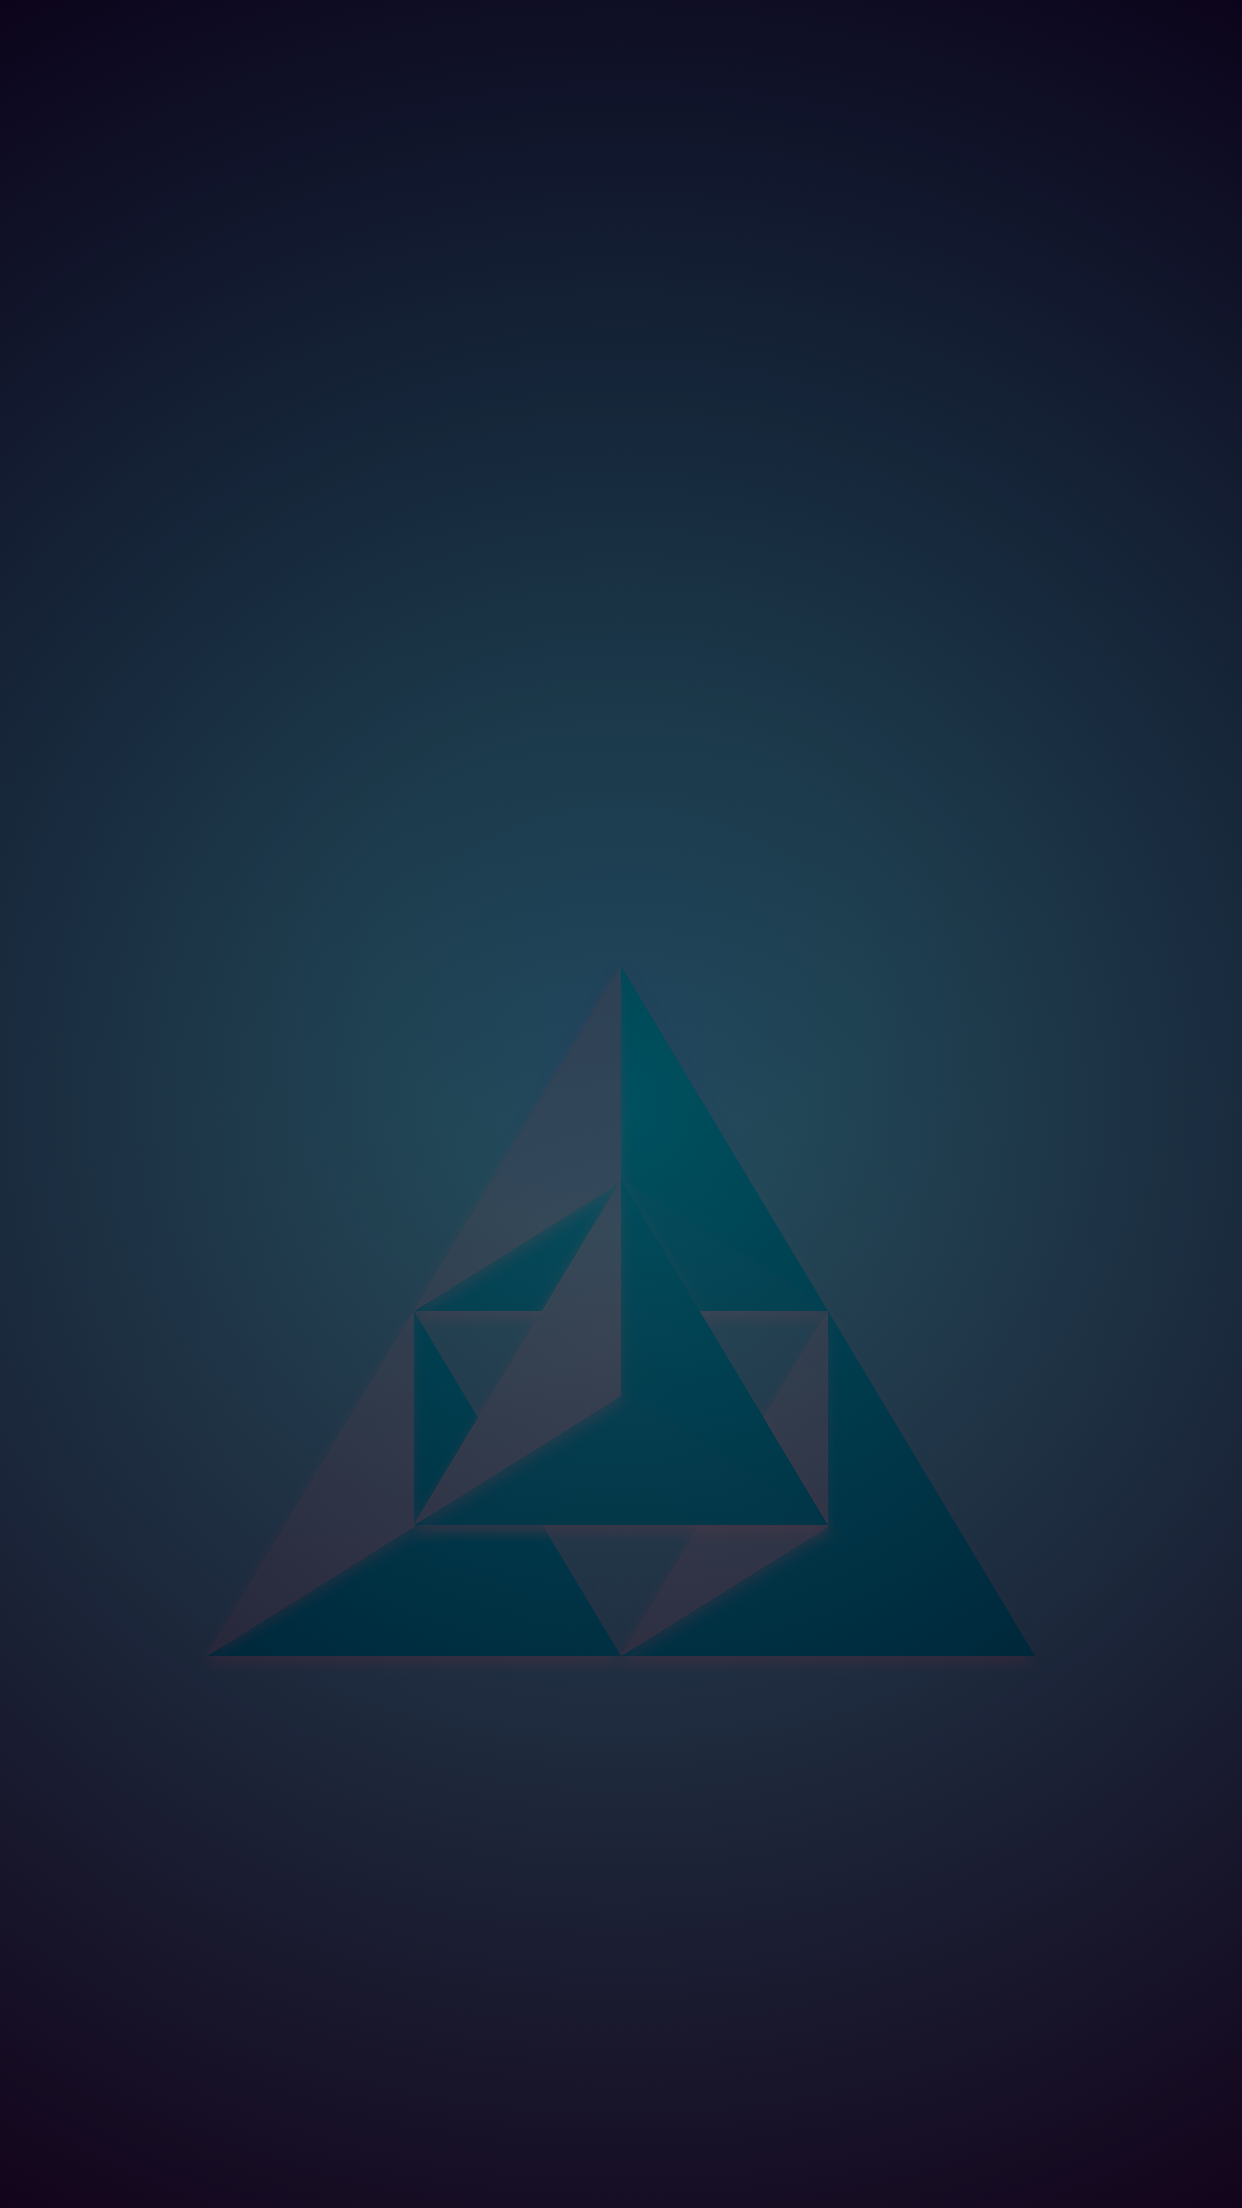 Angular Wallpaper - Home Screen